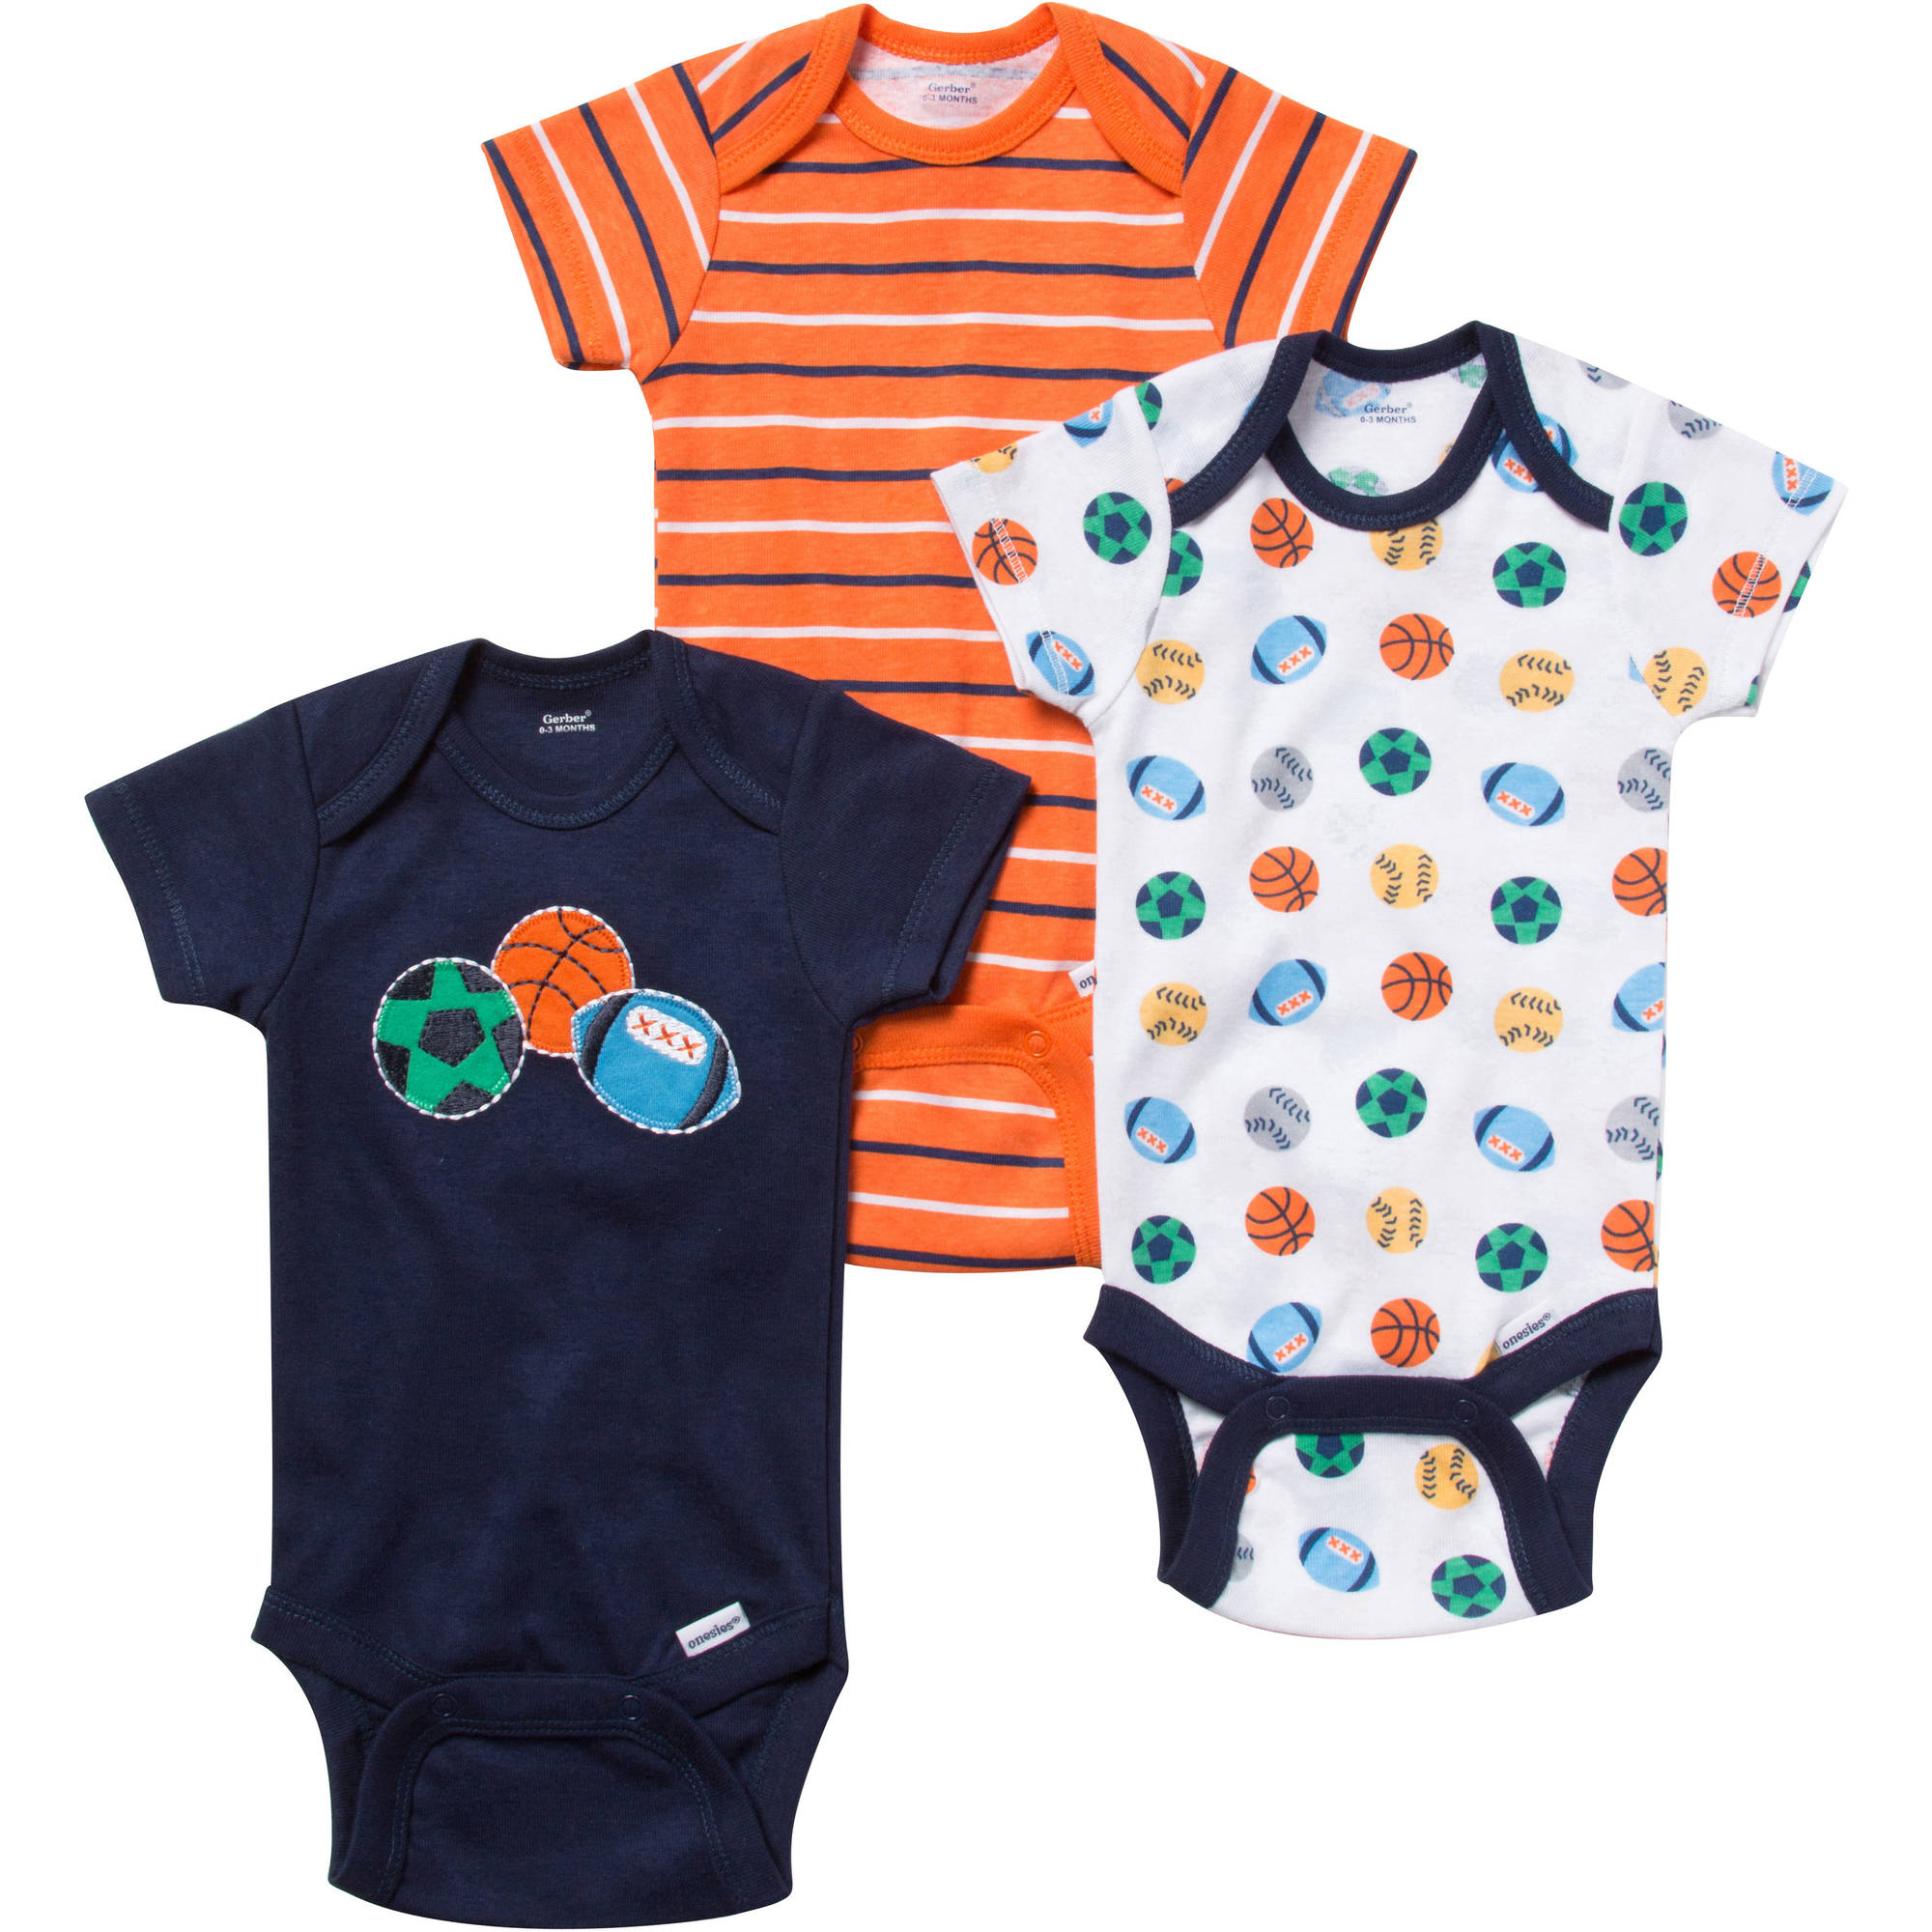 Baby Boy Bodysuits Clothes at Macy's come in a variety of styles and sizes. Shop Baby Boy Bodysuits Clothing and find the latest styles for your little one today.